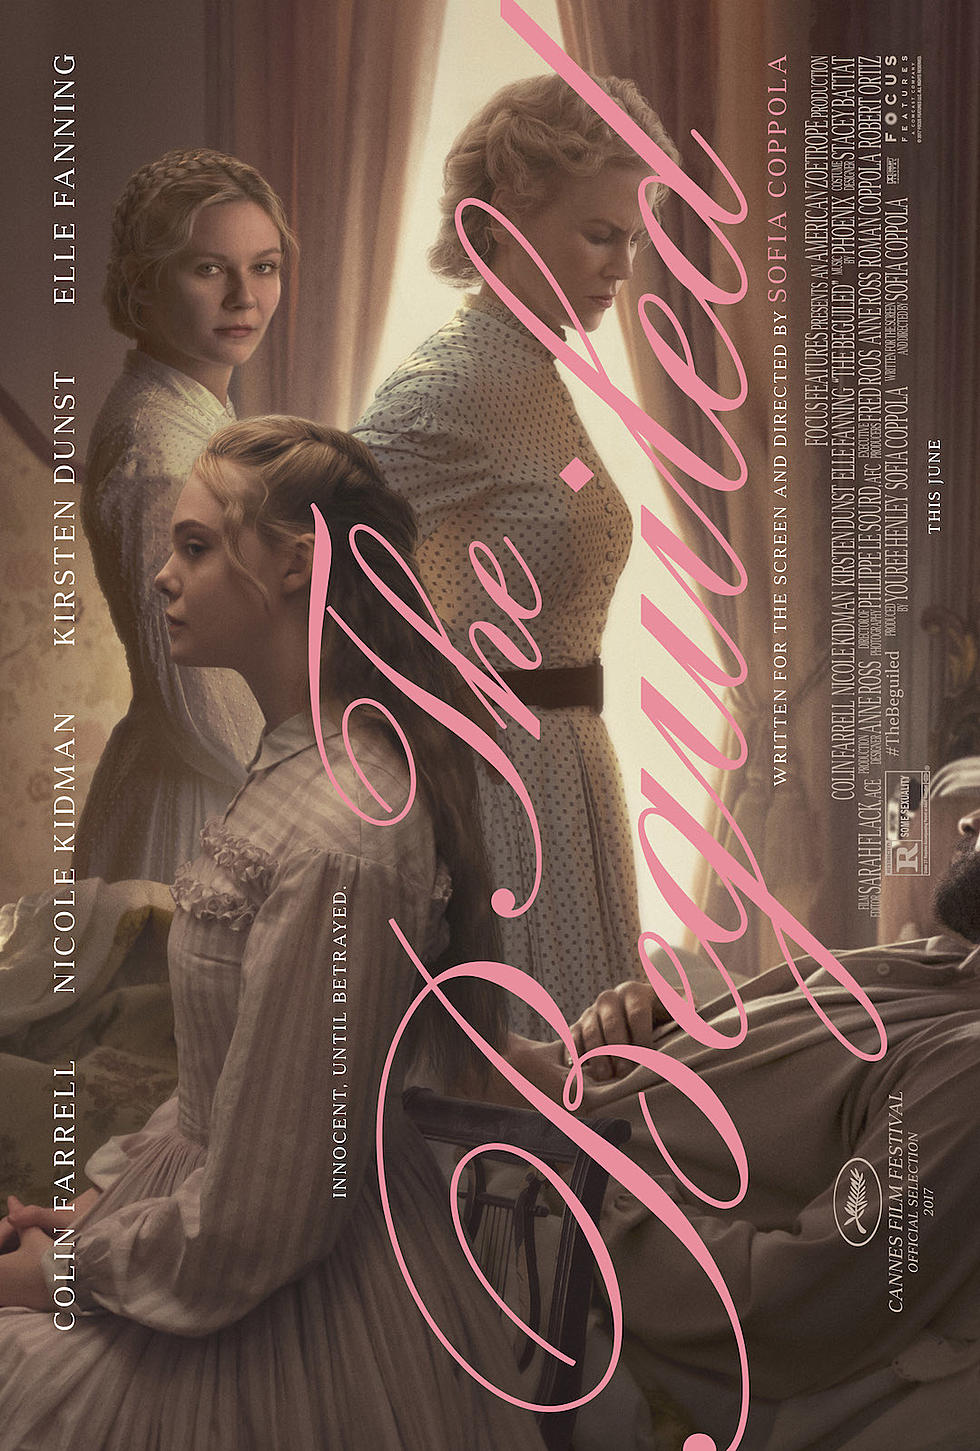 the-beguiled-poster.jpg